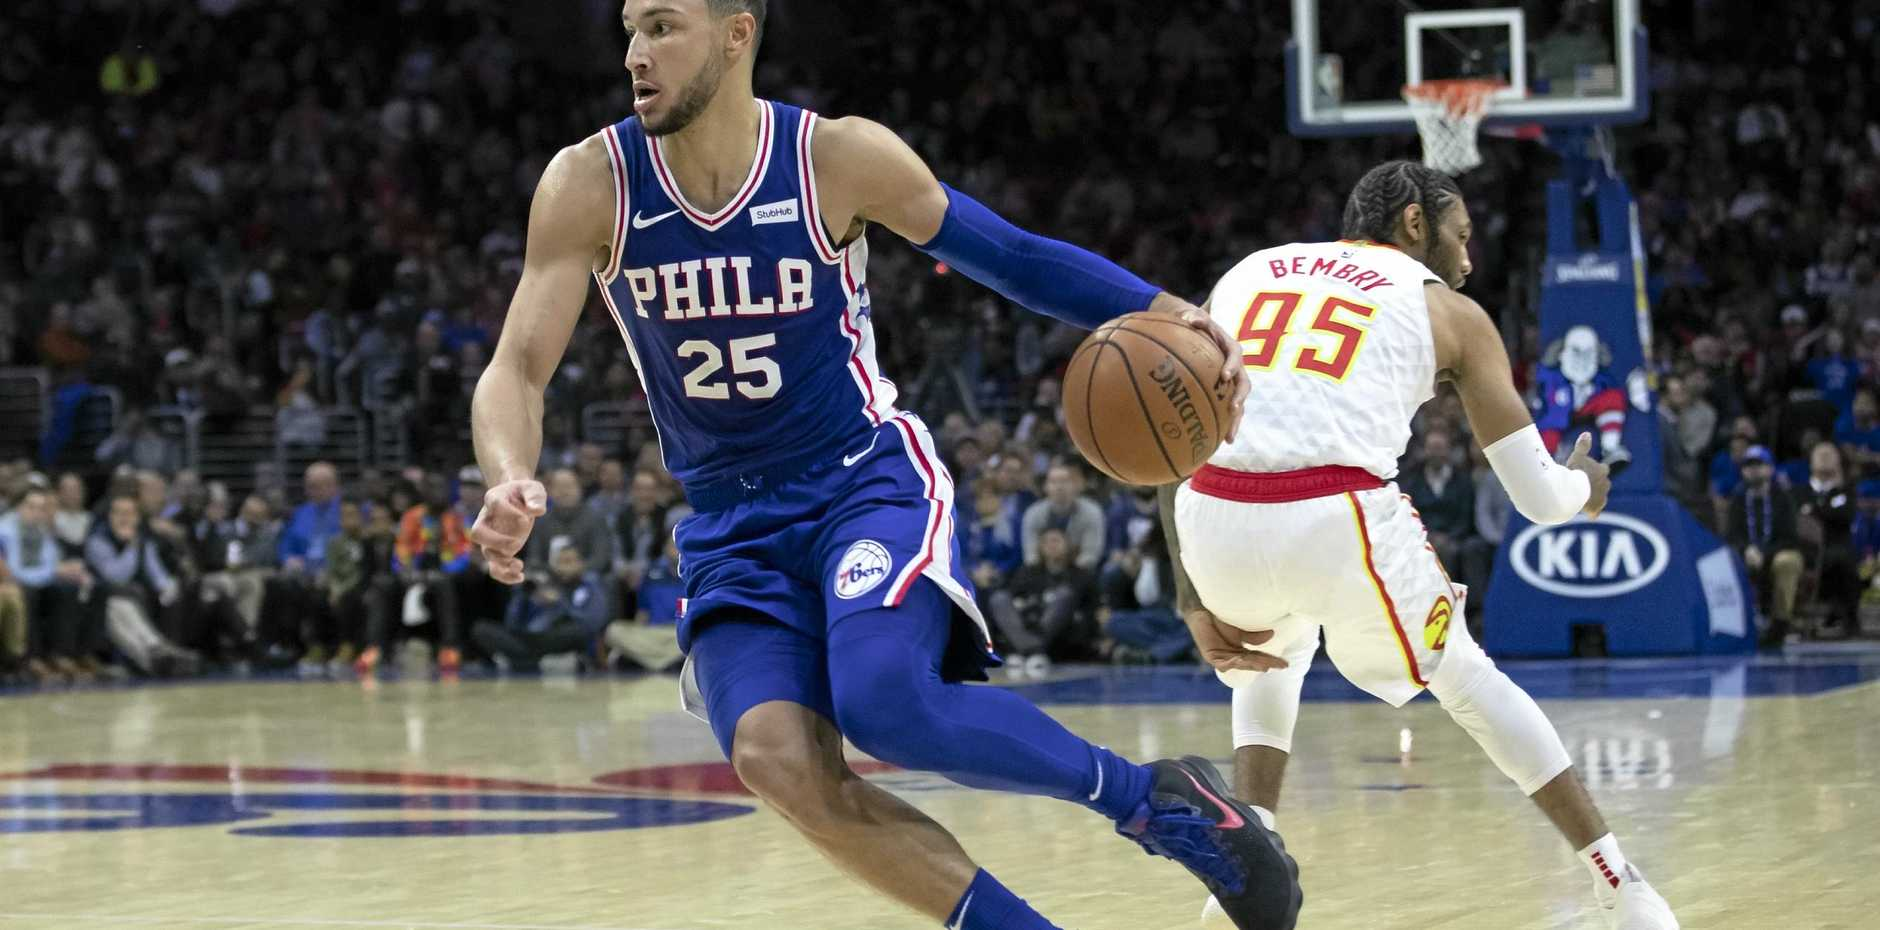 The Philadelphia 76ers' Ben Simmons is poised to help develop the game in Australia. Picture: Chris Szagola/AP